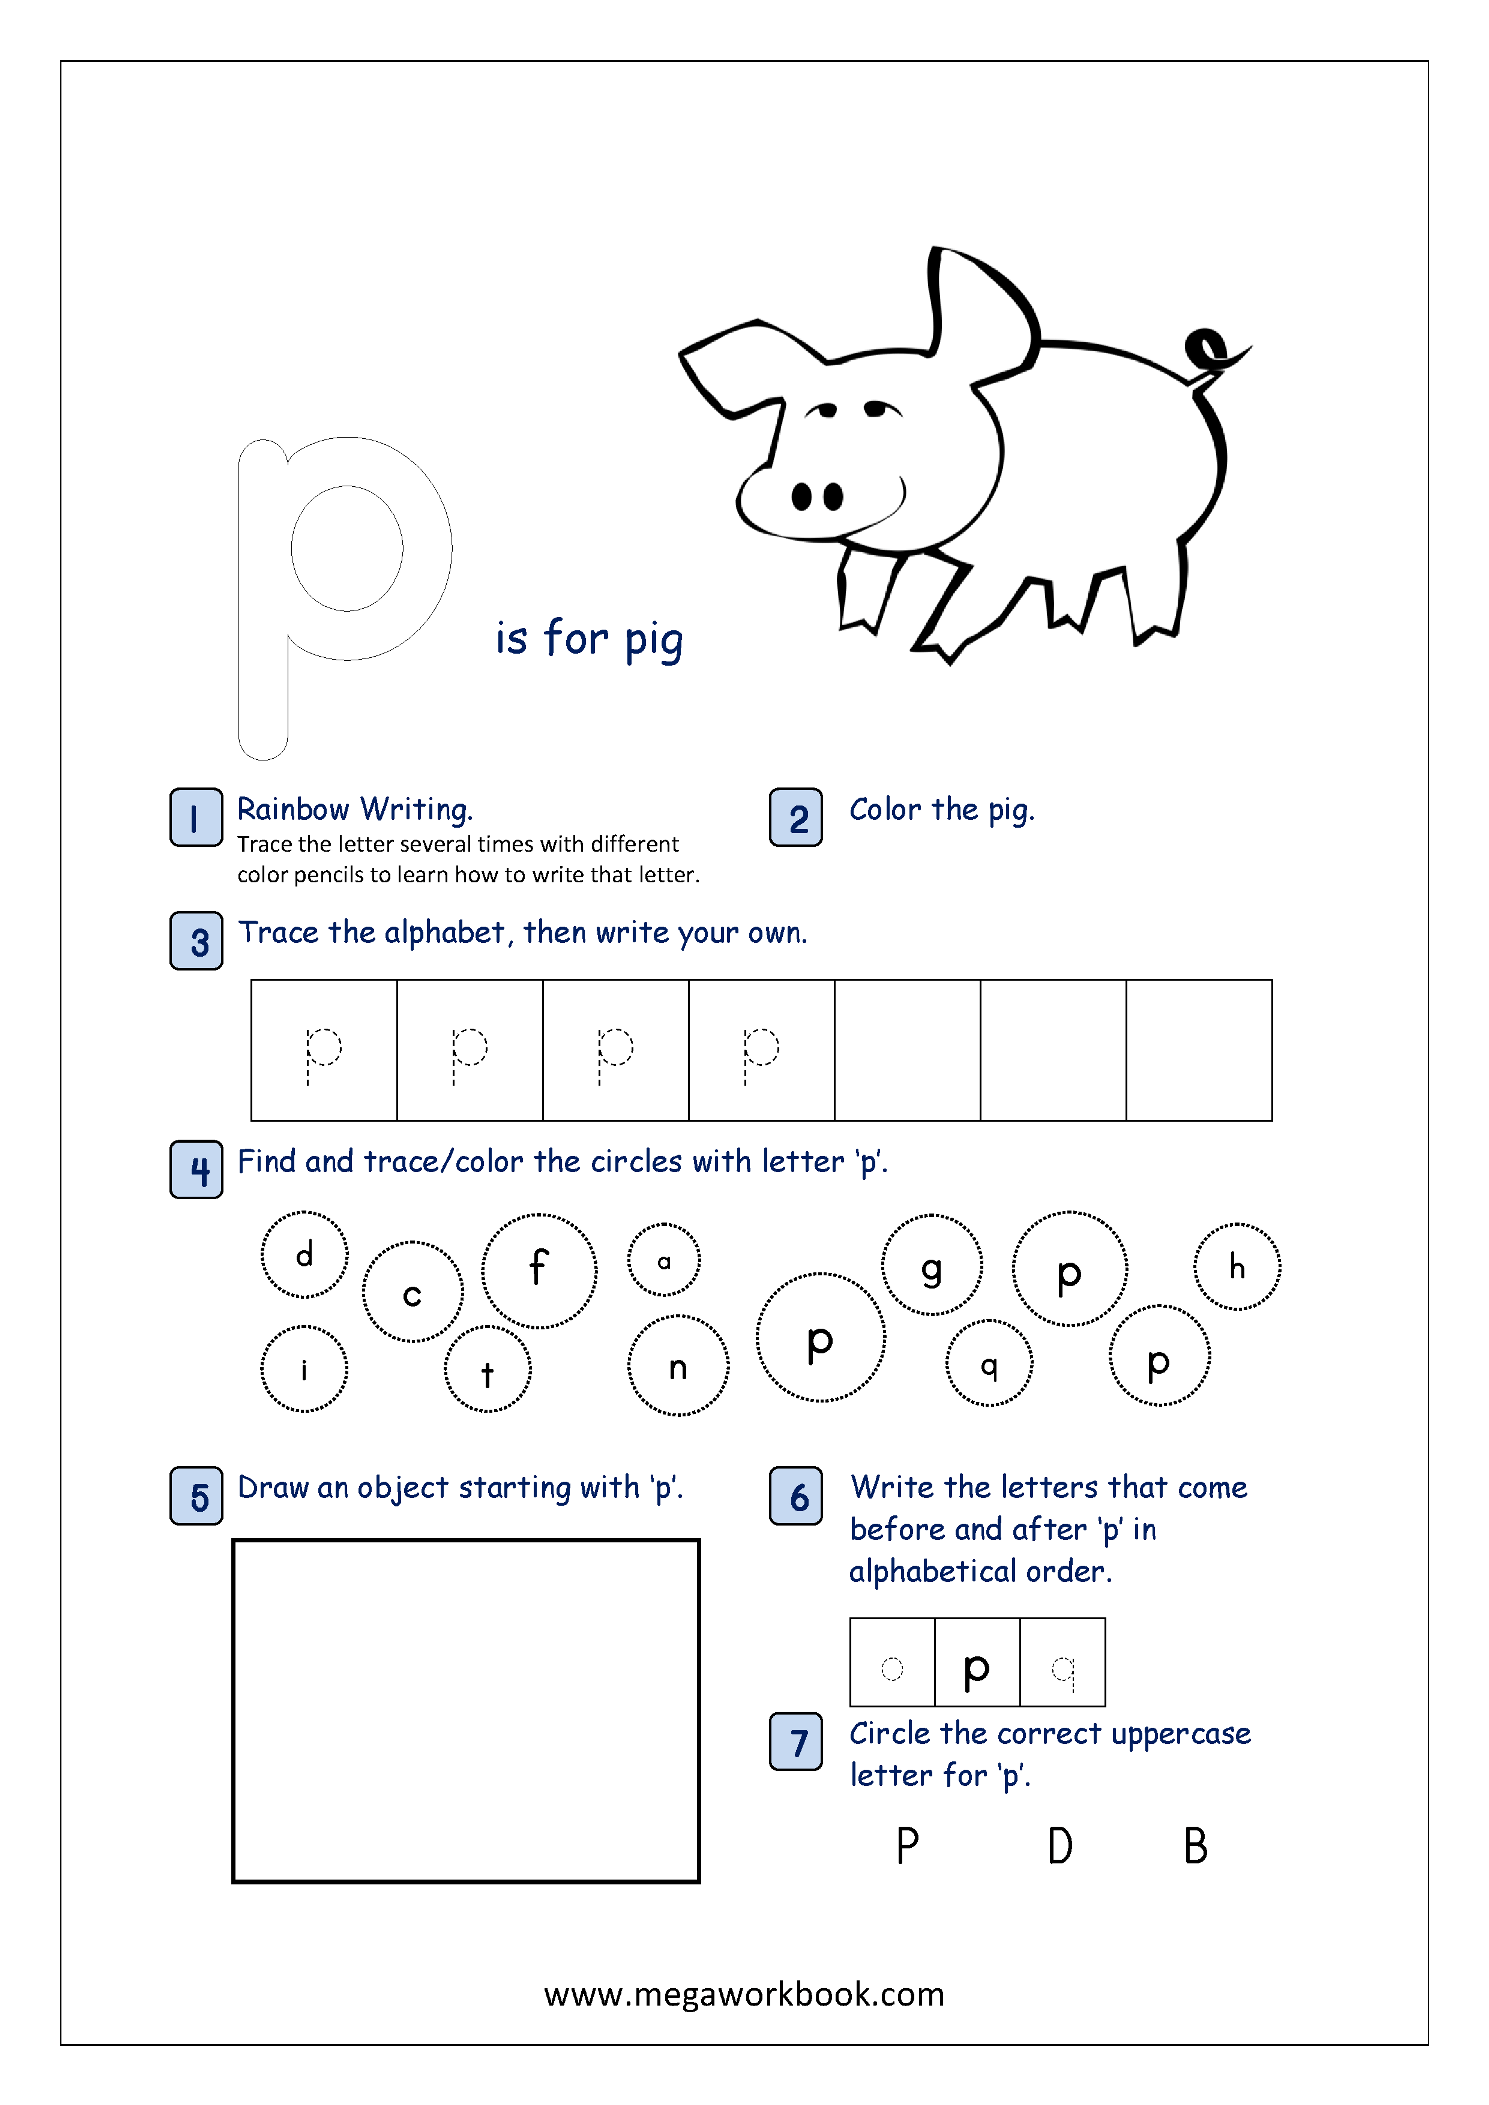 Free Printable Alphabet Recognition Worksheets For Small